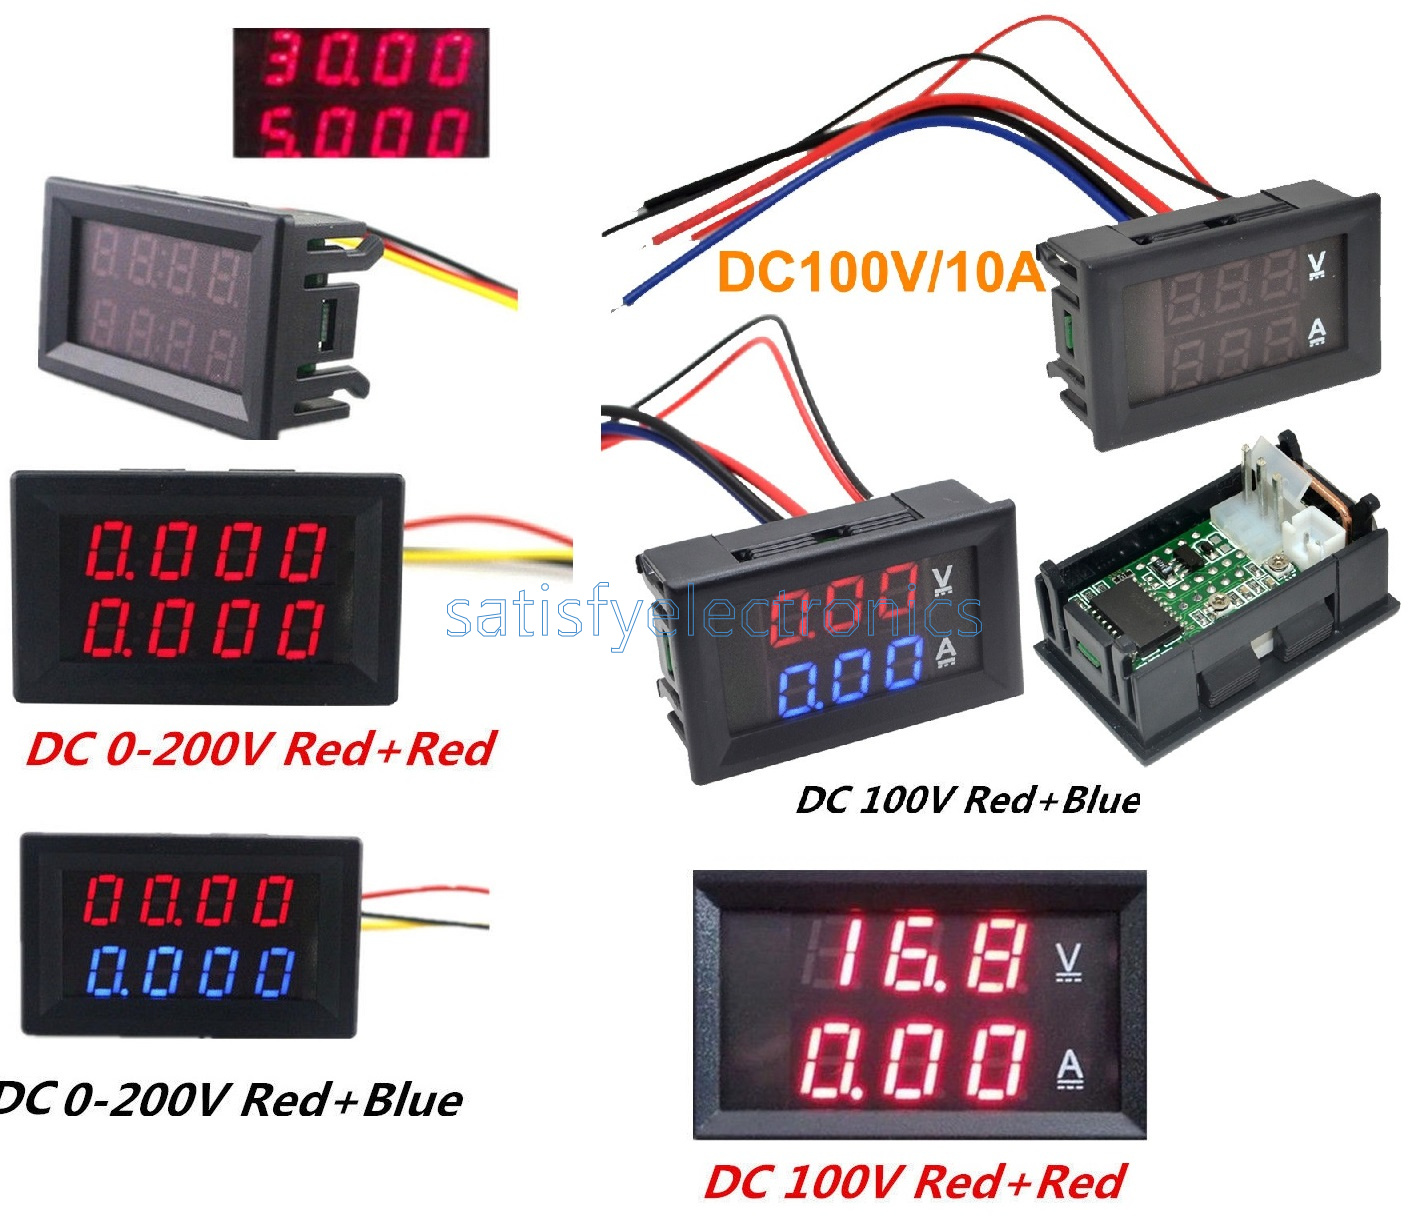 Dc 0 200v 100v 10a 3 4 Bit Voltmeter Ammeter Red Blue Led Wiring And Amp Meter Wires